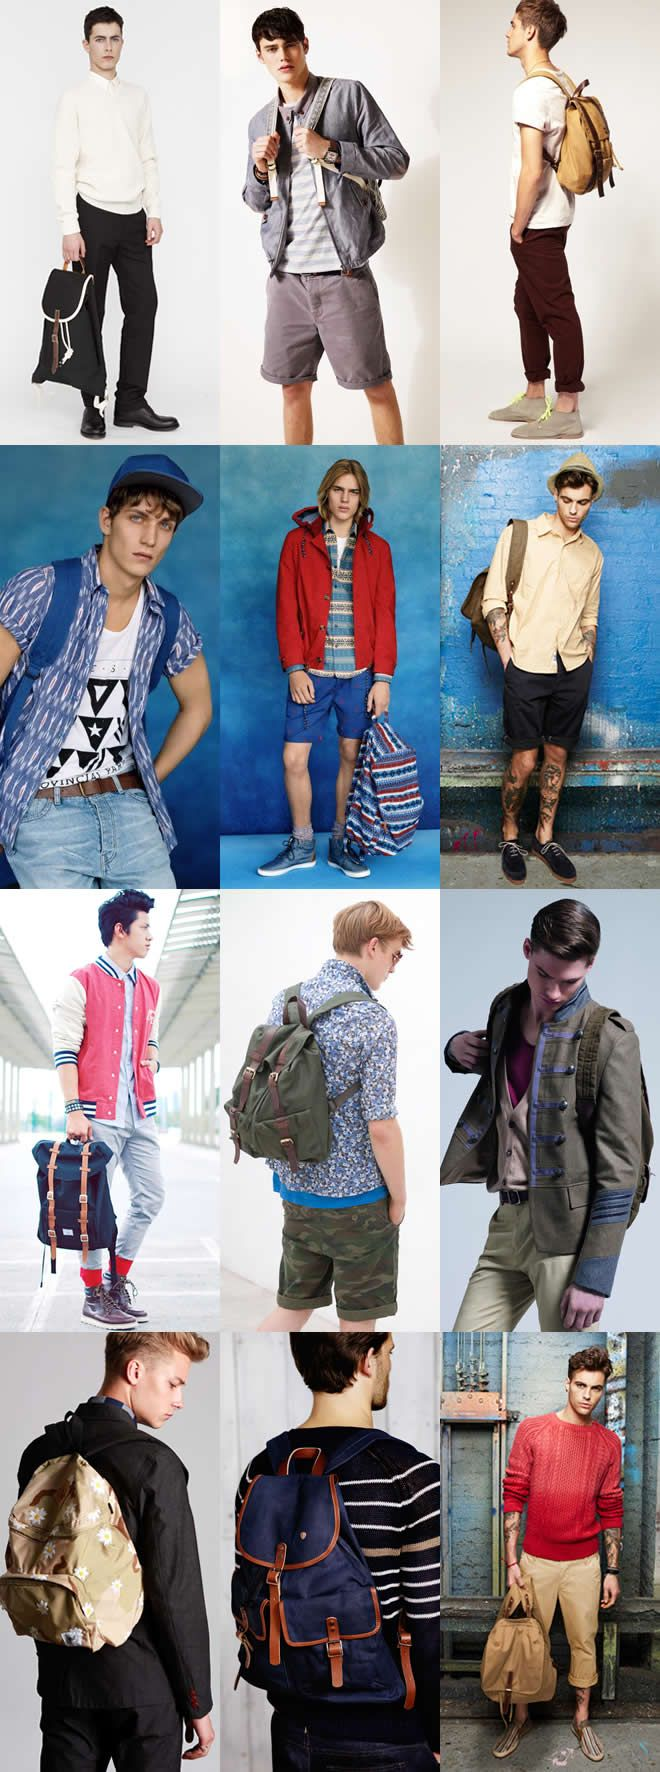 Men's SS13 Trend Look: Skater Boy photo